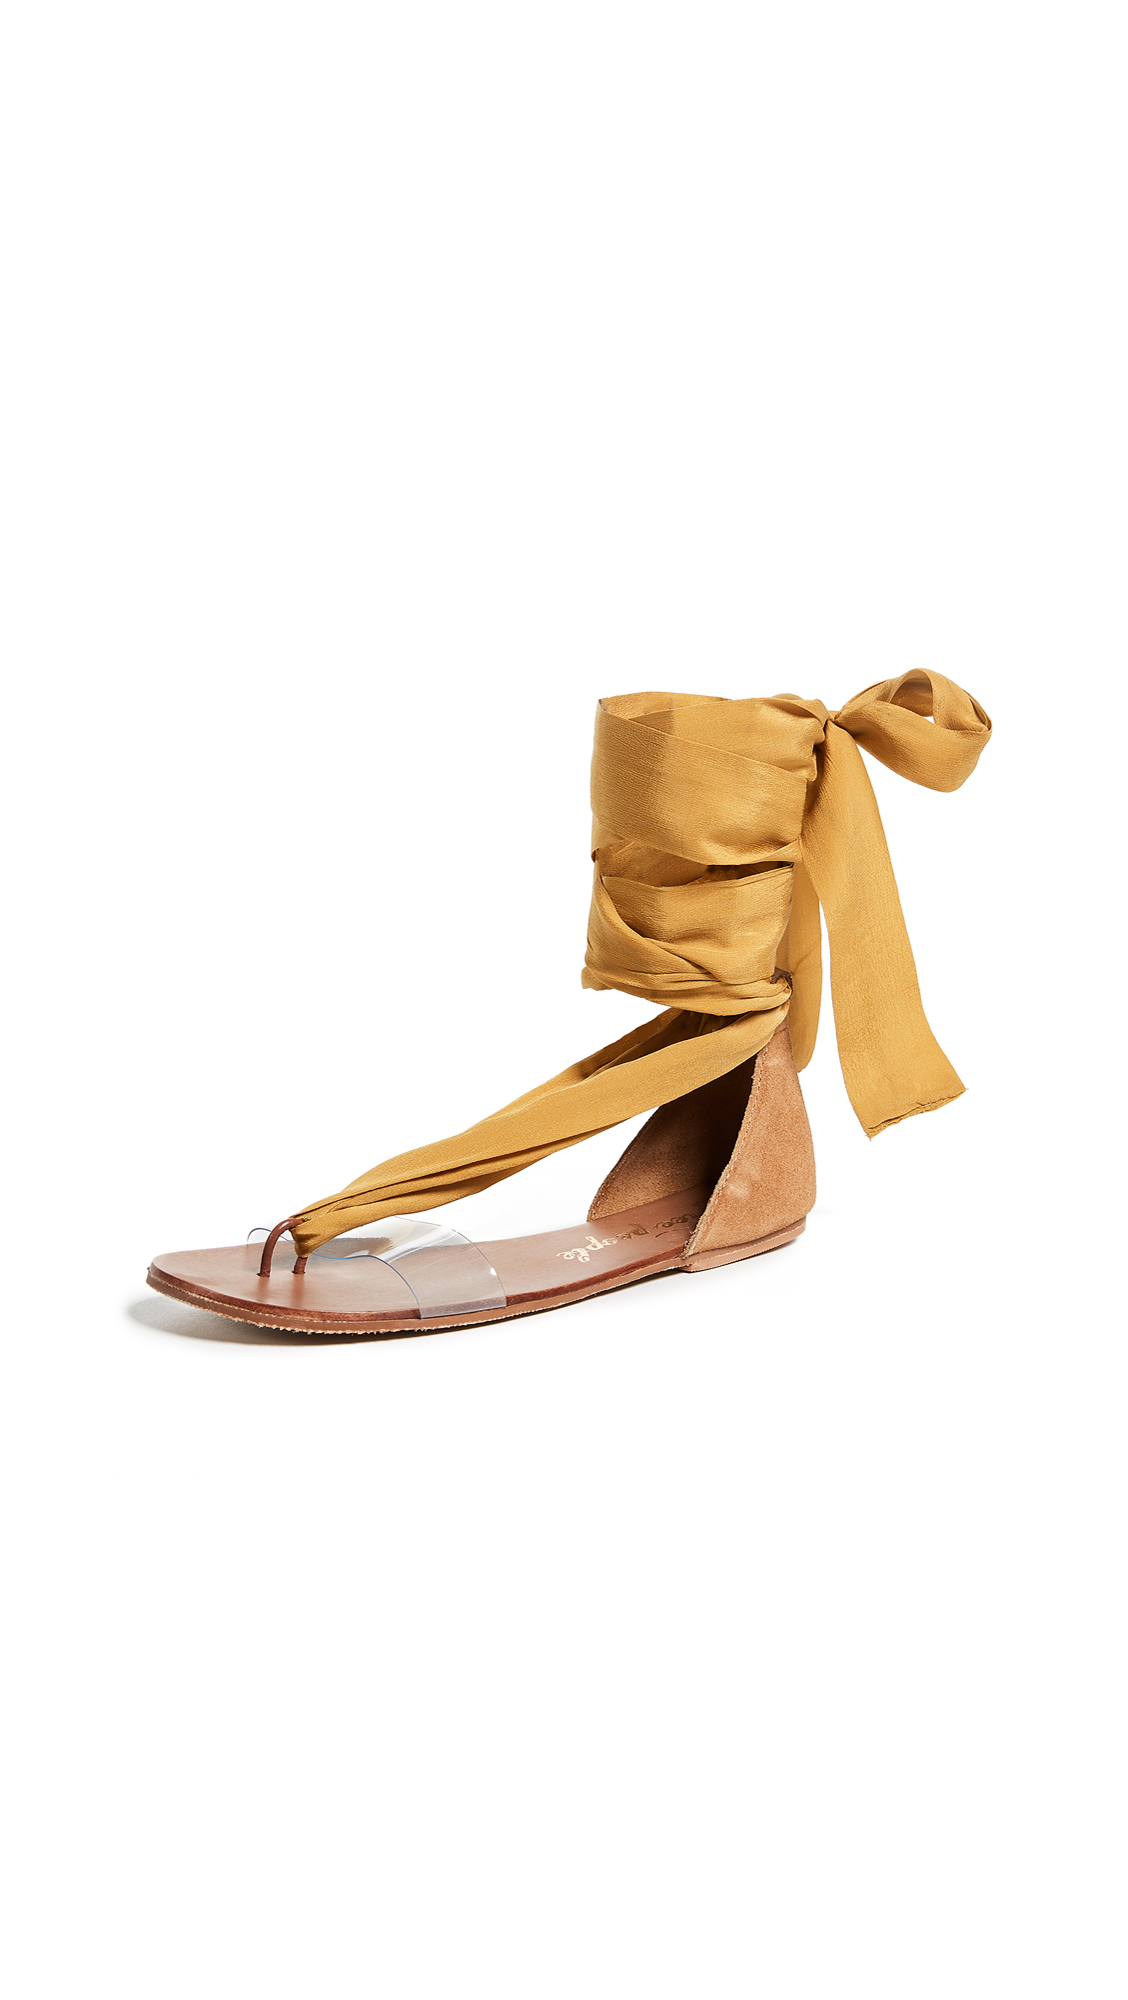 Free People Barcelona Wrap Sandals - Yellow